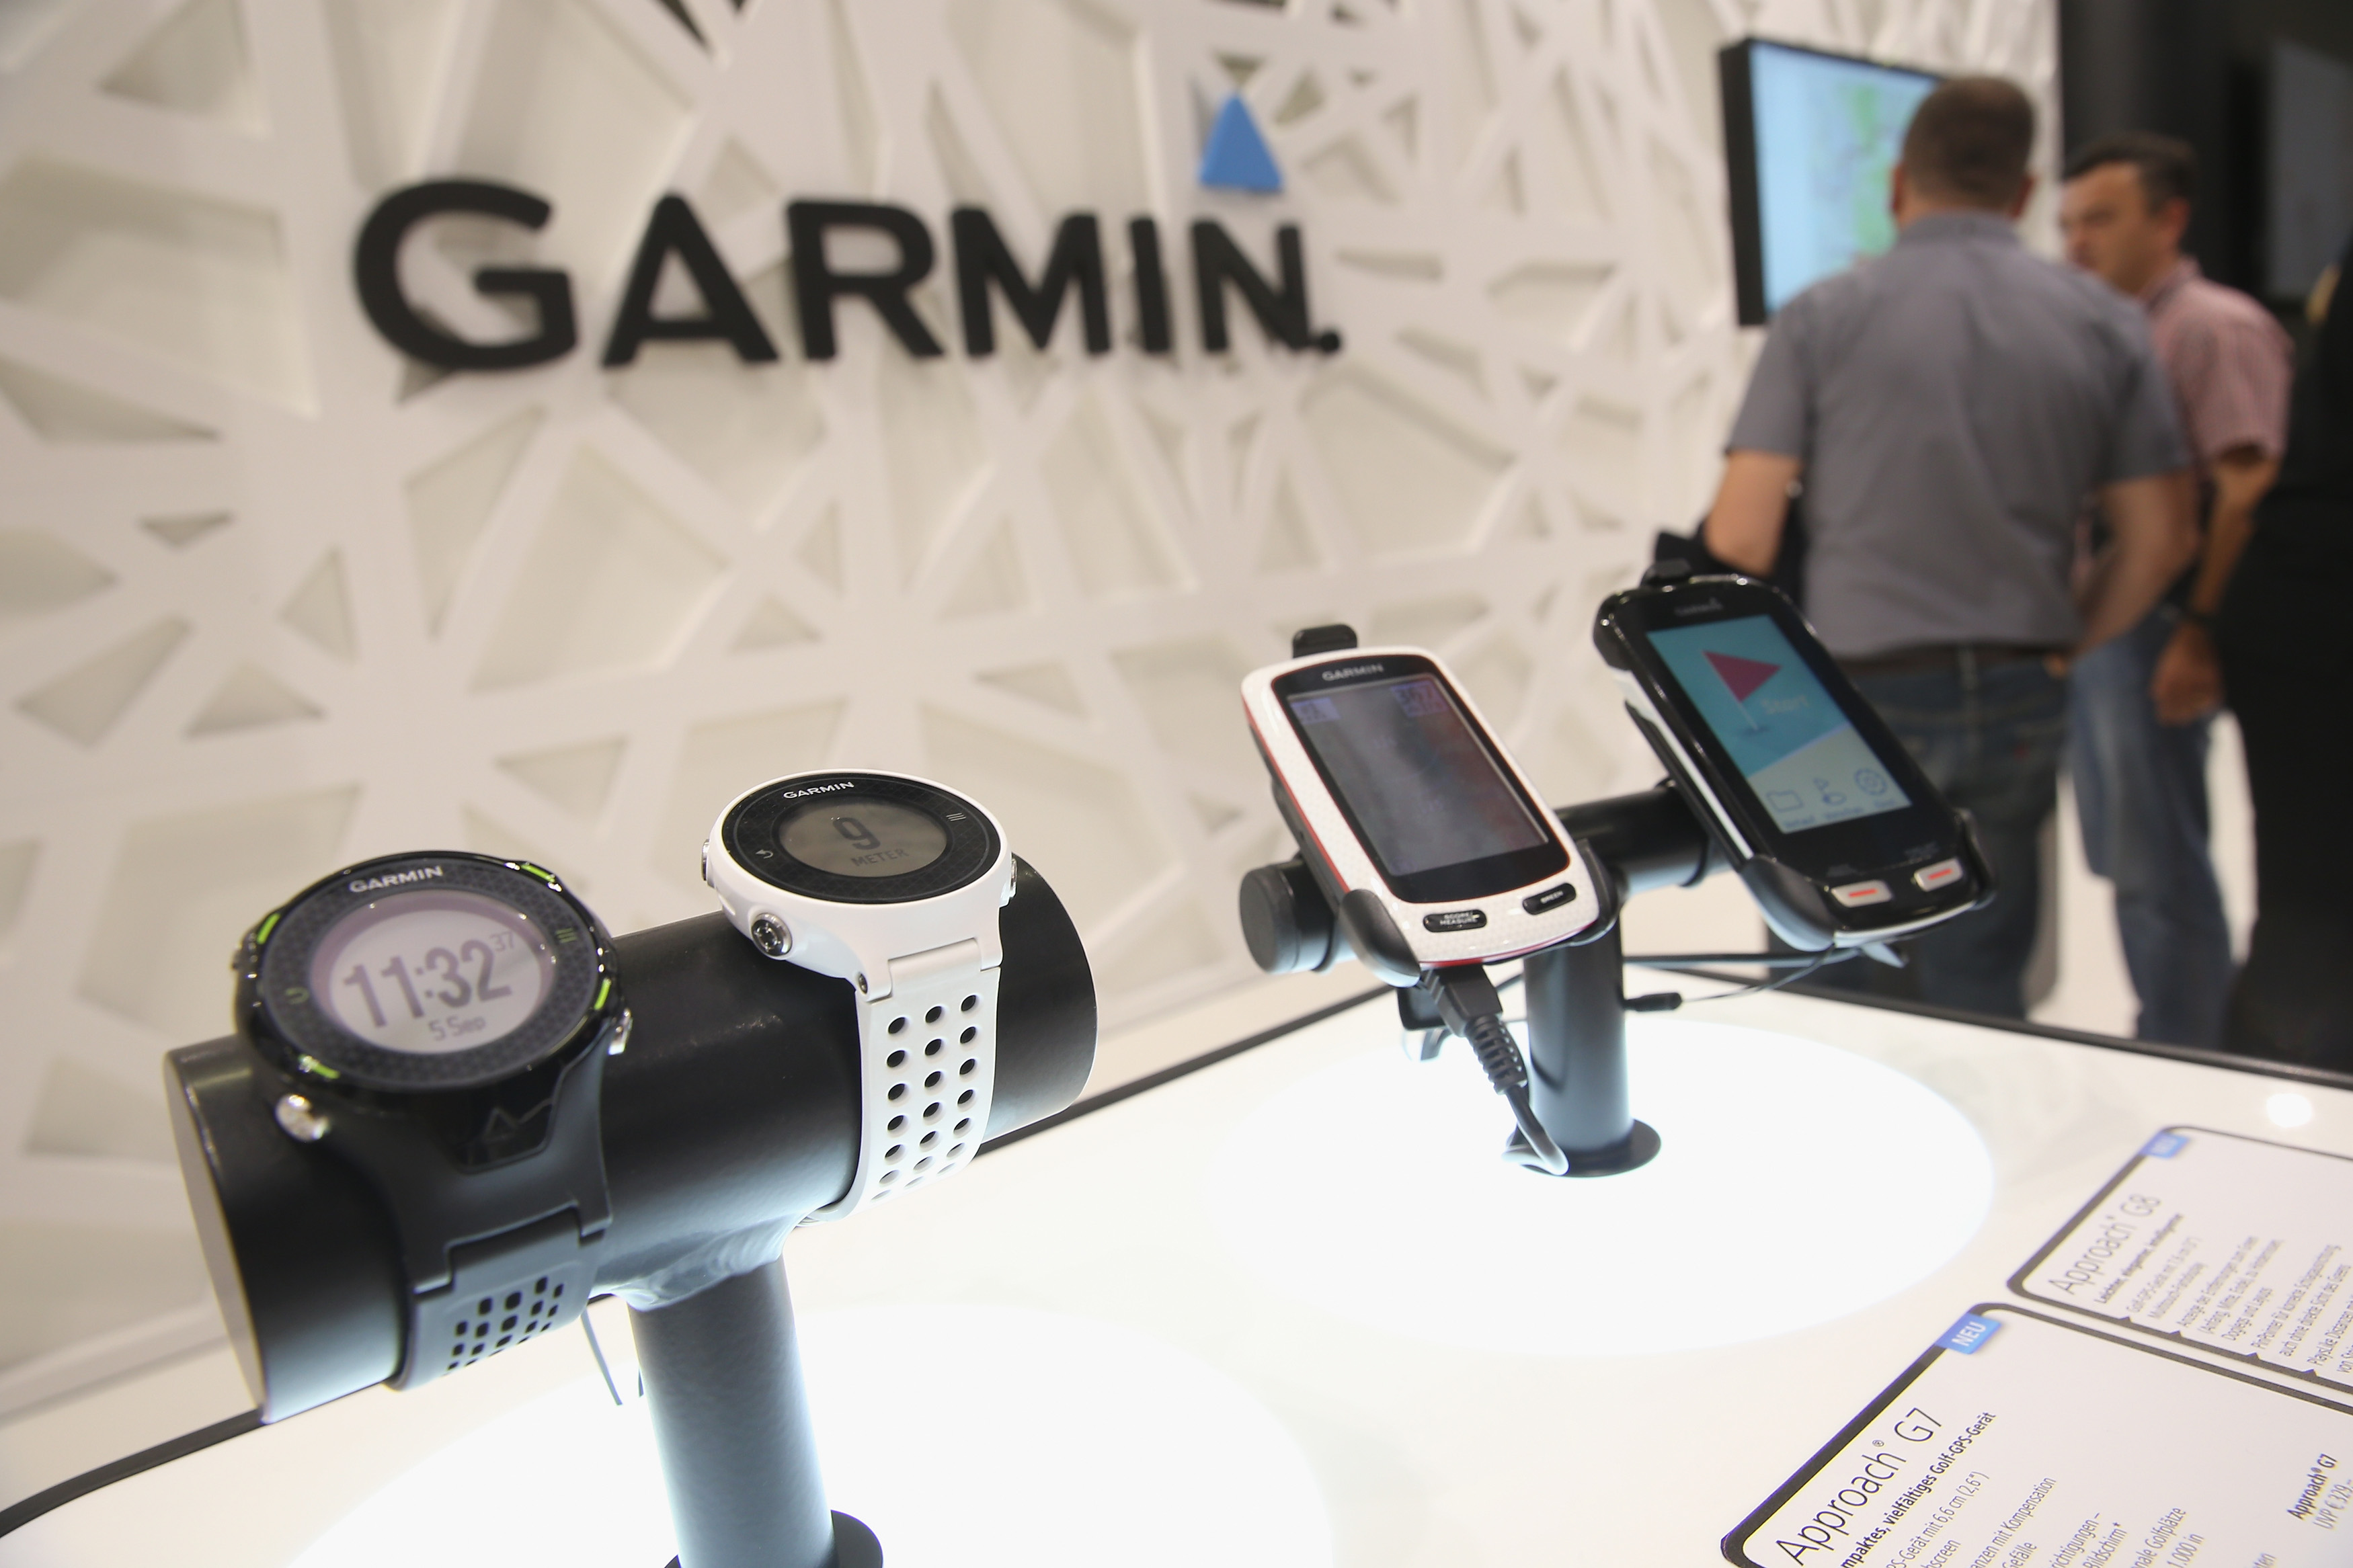 Garmin GPS devices designed for golfers on display.